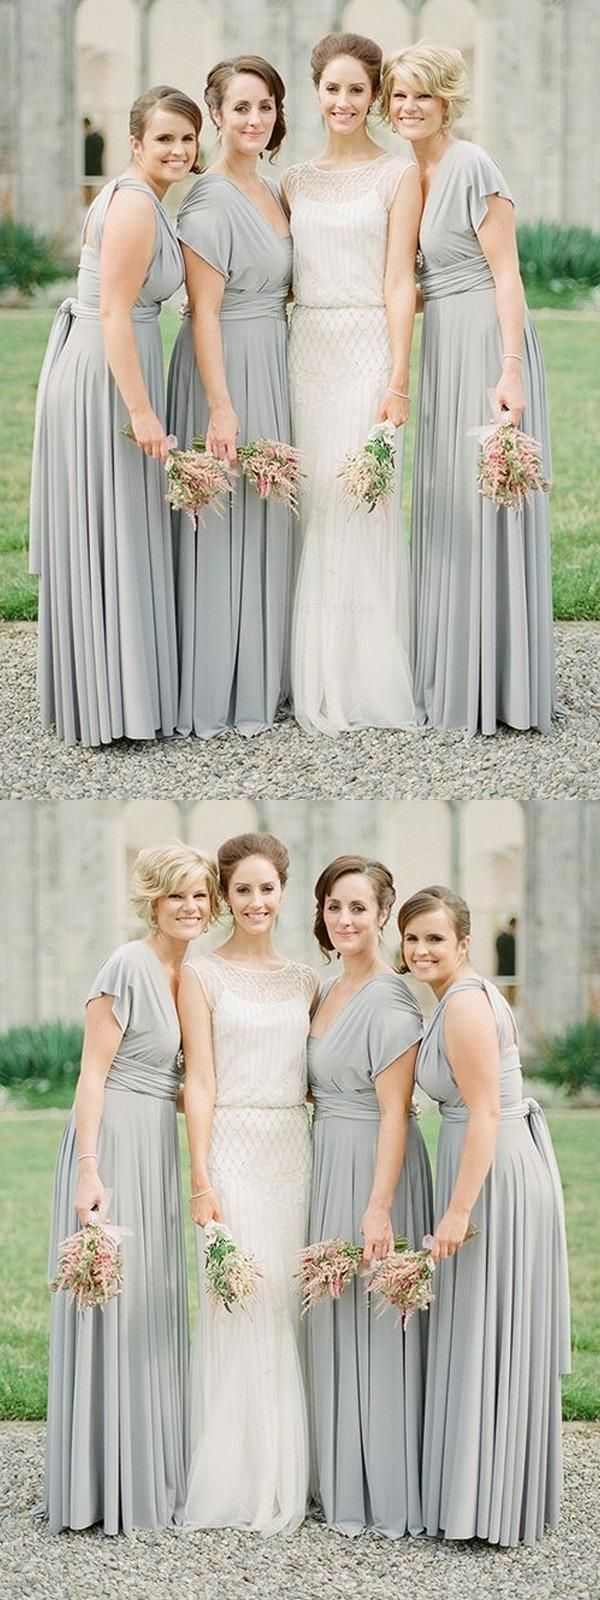 Discount Splendid Bridesmaid Dress Chiffon, Simple Bridesmaid Dress, V Neck Bridesmaid Dress, Grey Bridesmaid Dress